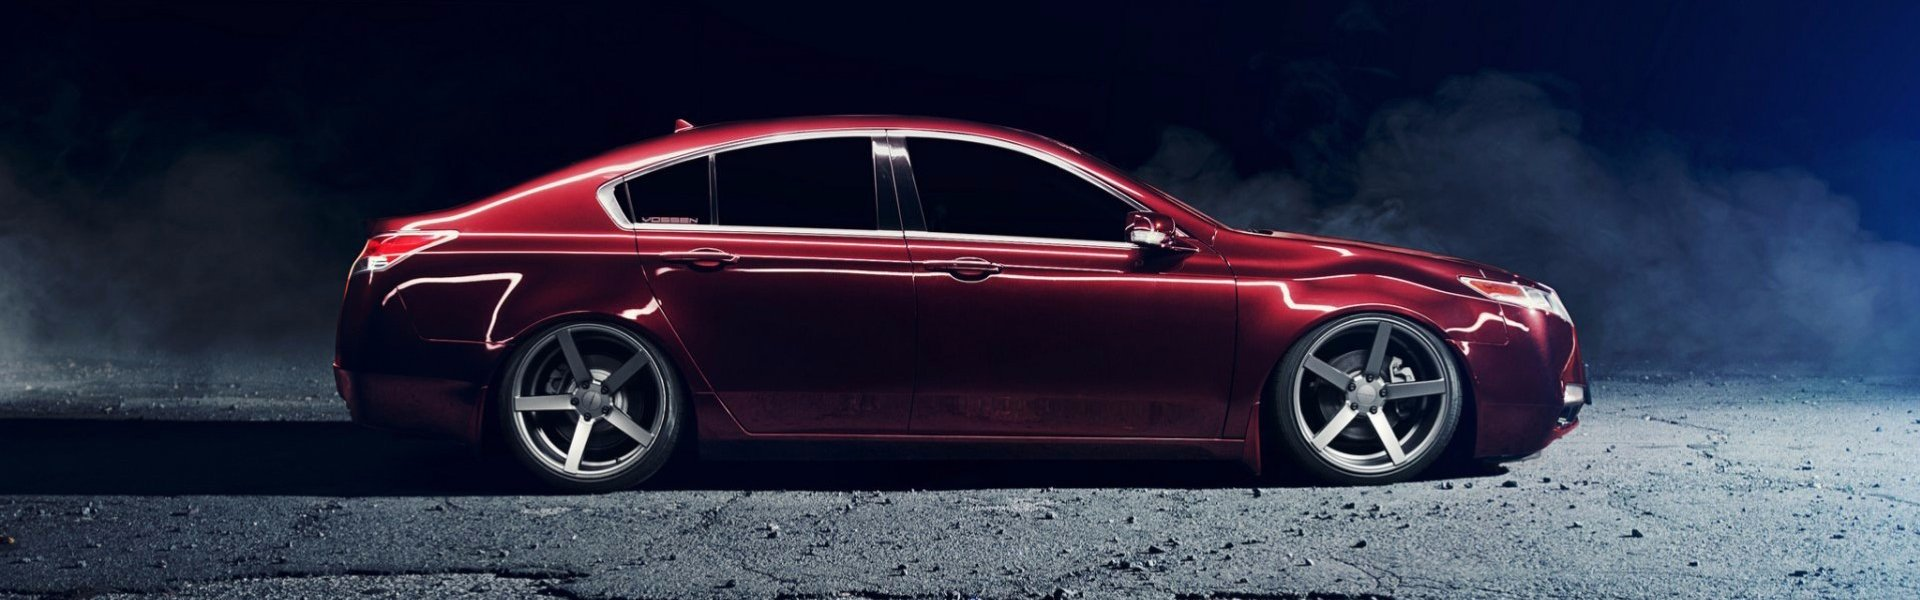 Honda Acura TL red stance-тюнинг